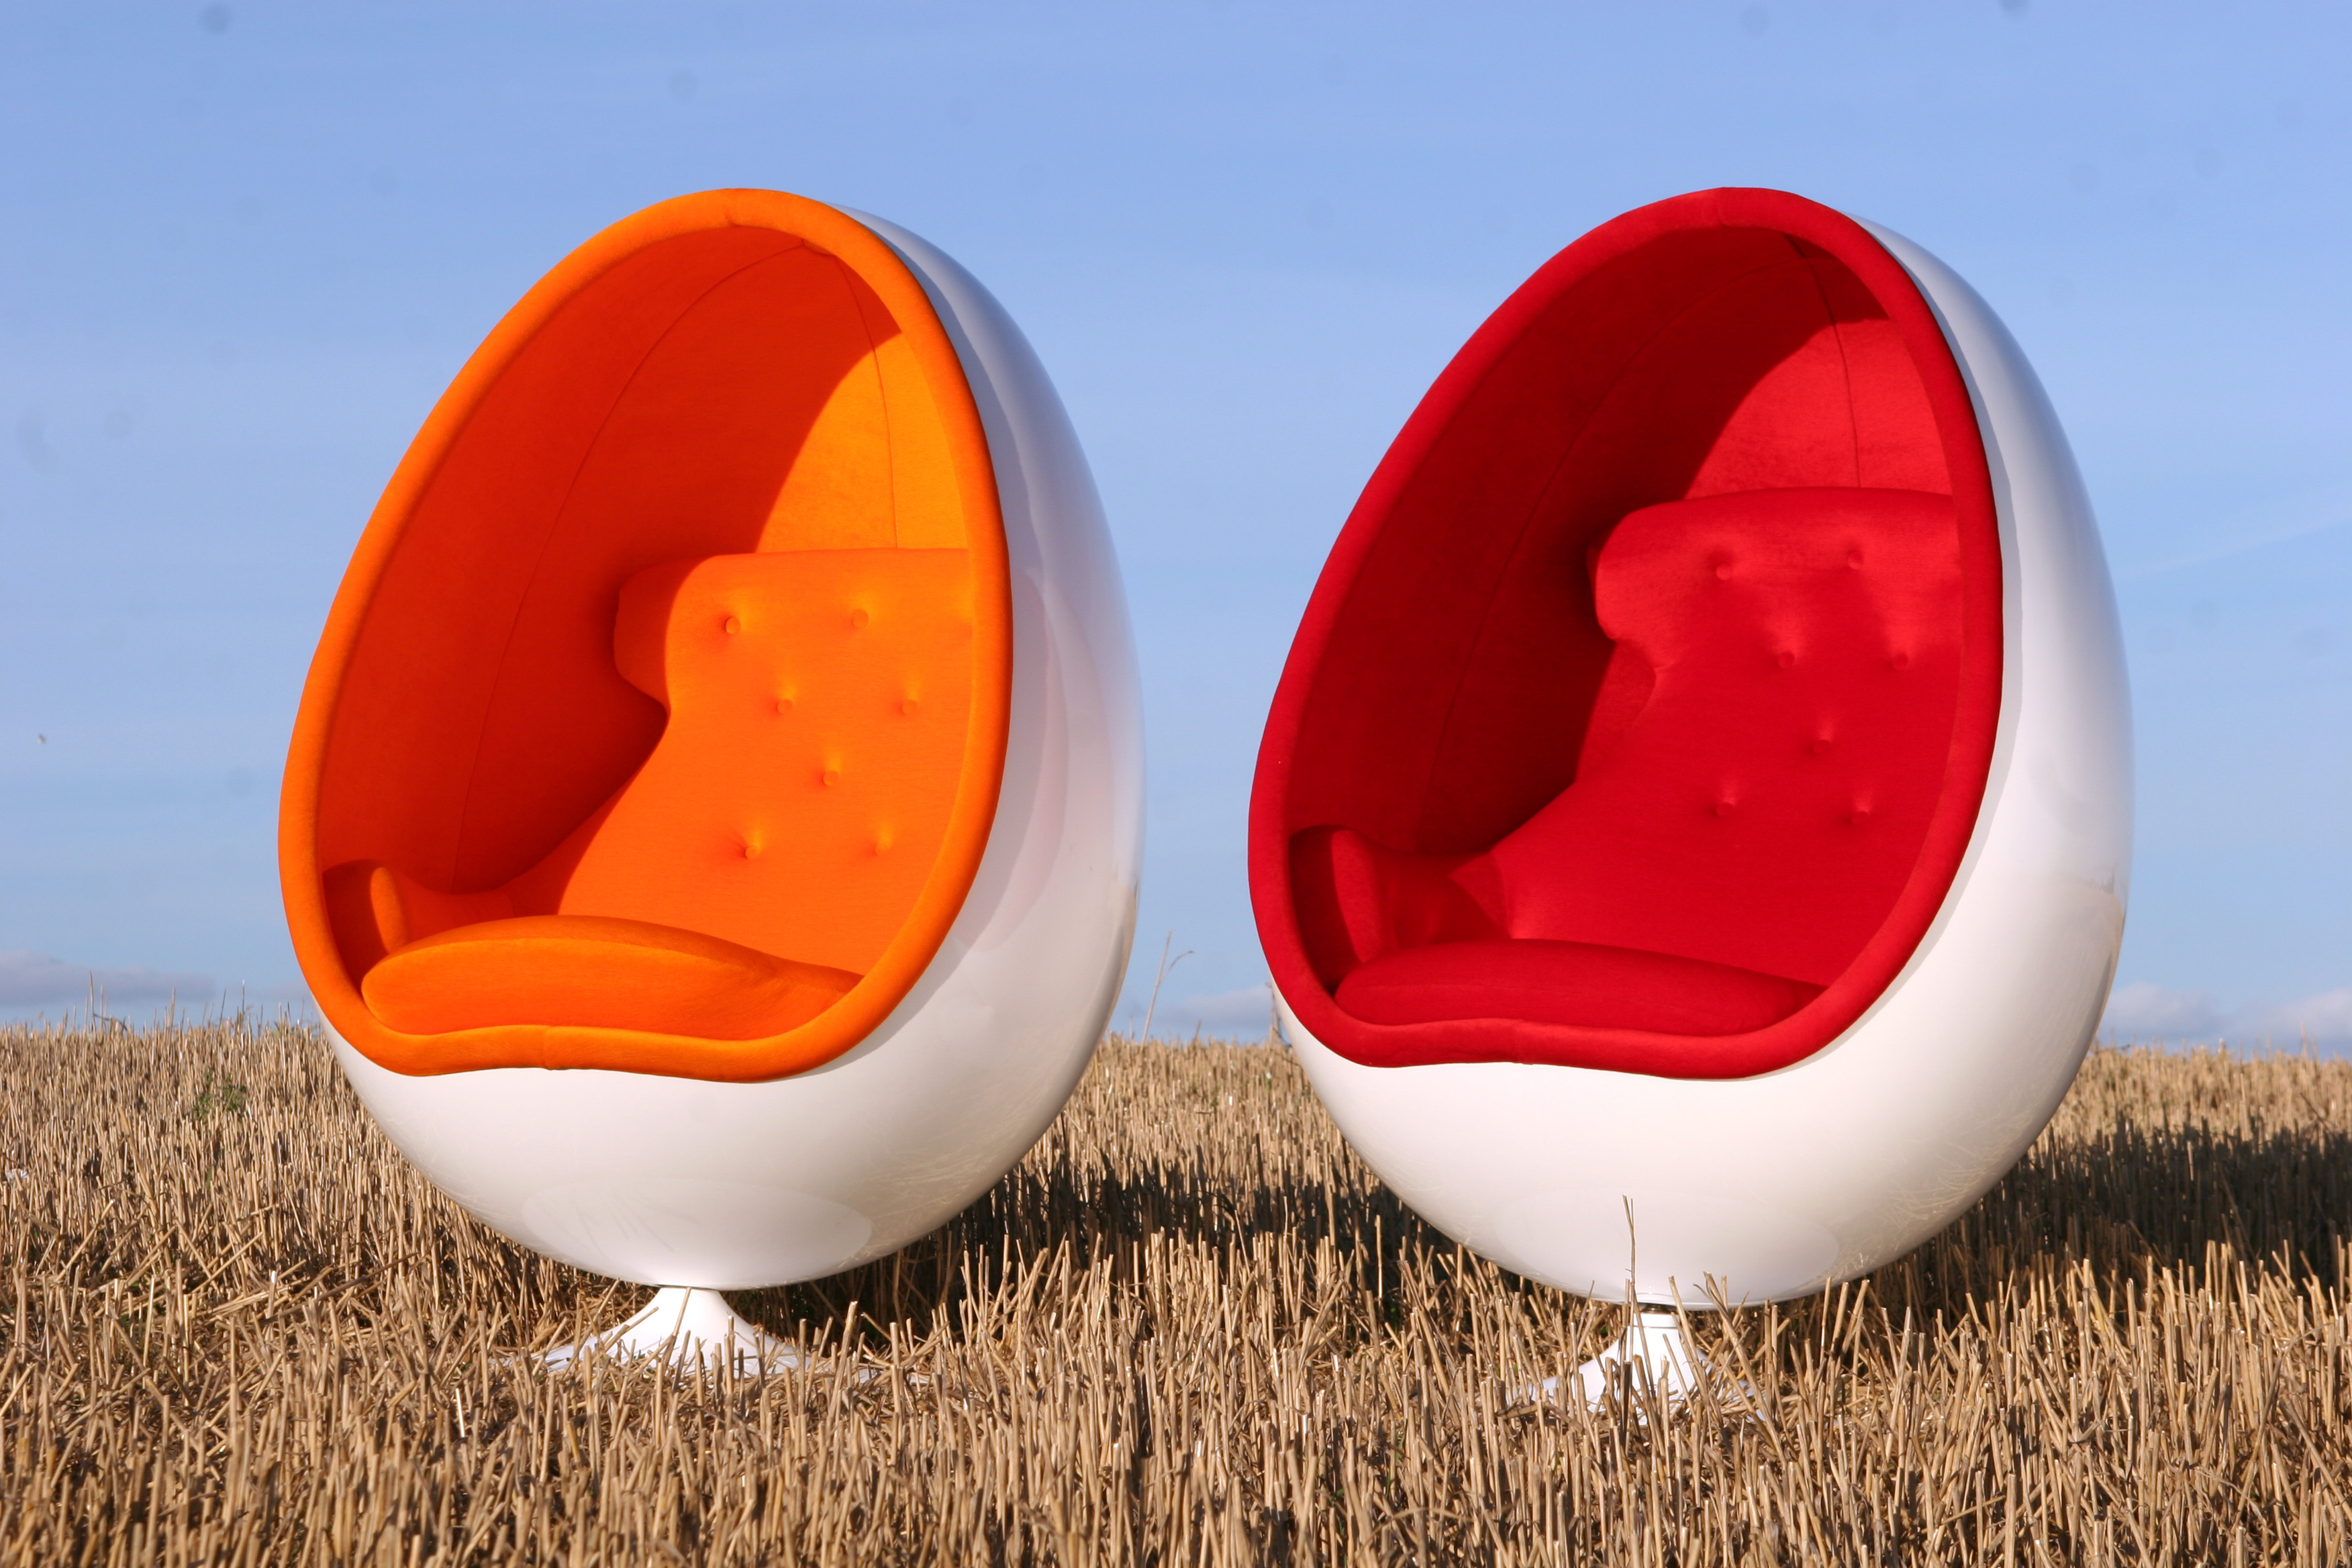 Hatching Cats I Have Cat: egg pod ball chair